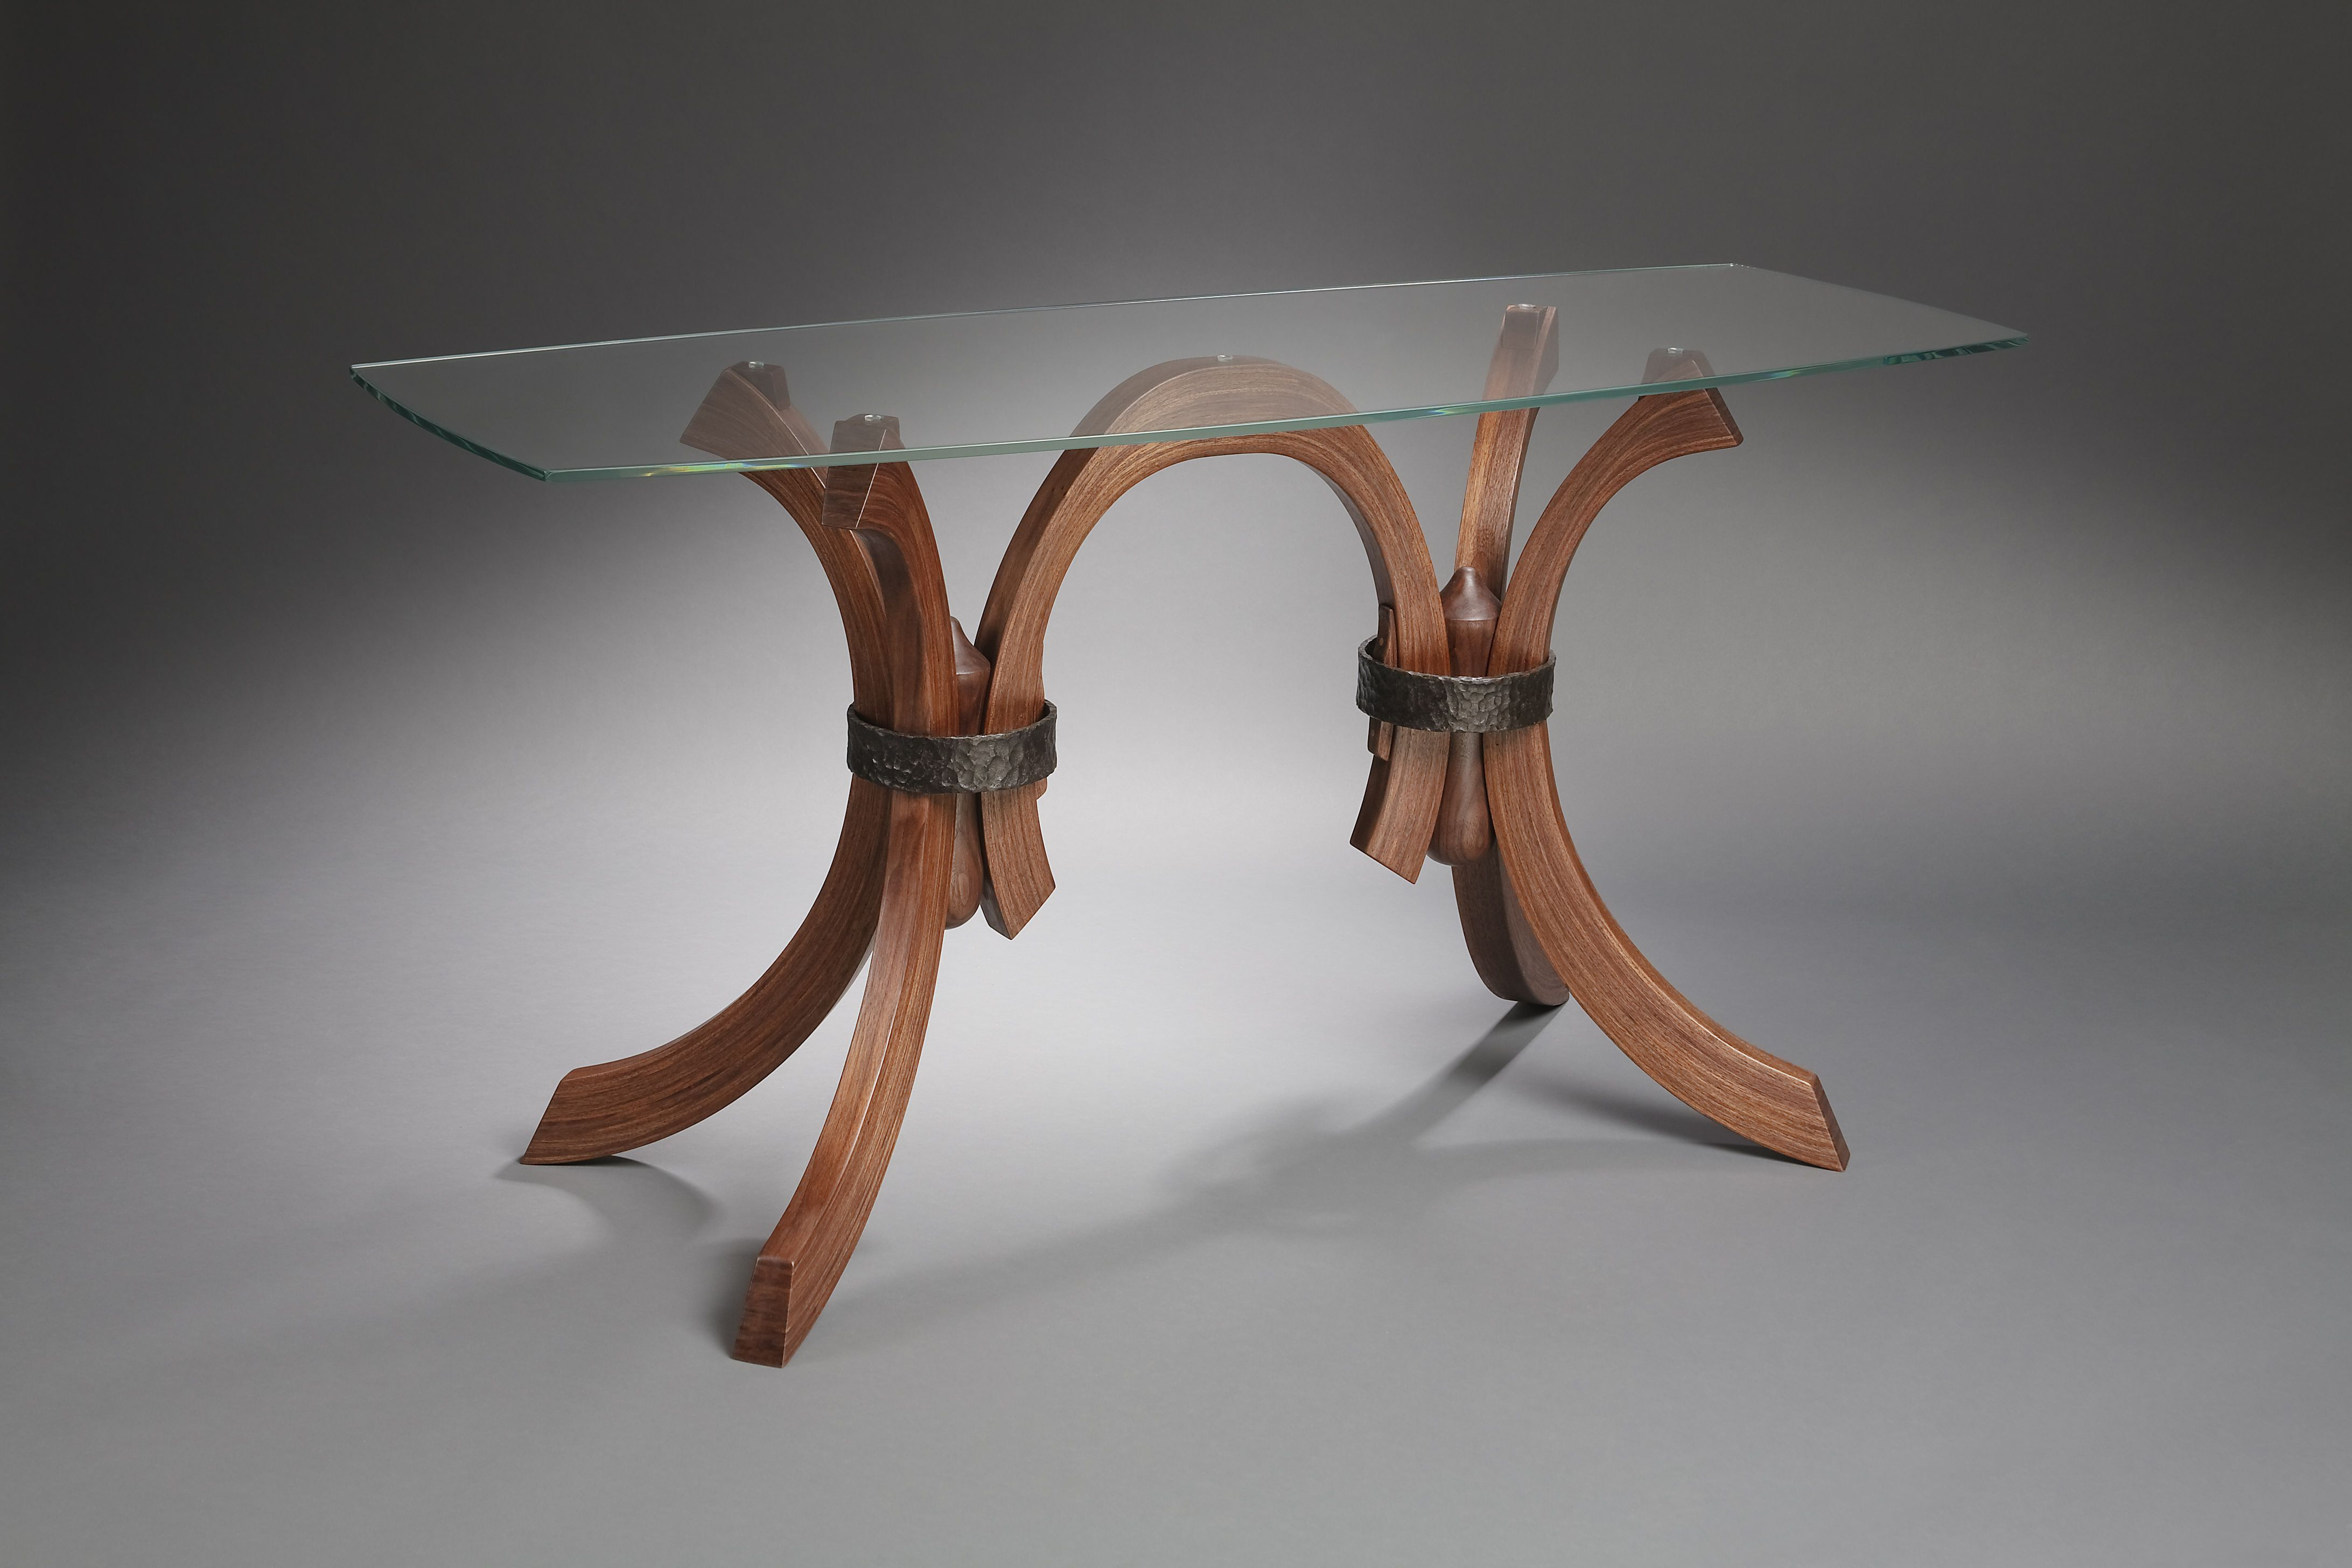 Hand Made Glass Table With Wood And Forged Iron Legs By